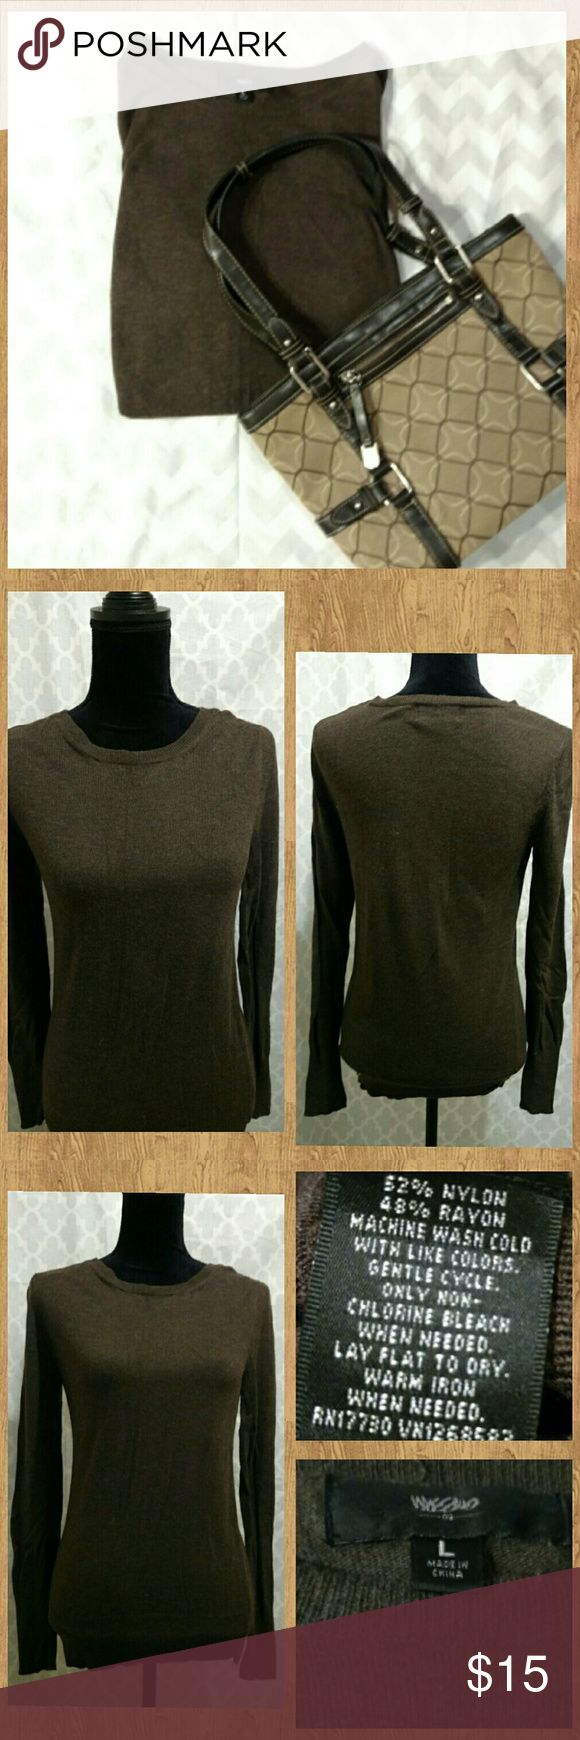 Mossimo Brown Long Sleeve Brown long sleeve top. Soft, cashmere-LIKE material (nylon/rayon blend). Very good, pre-owned condition. Only worn 1-3 times.   Discount available with bundle purchase. Mossimo Supply Co Tops